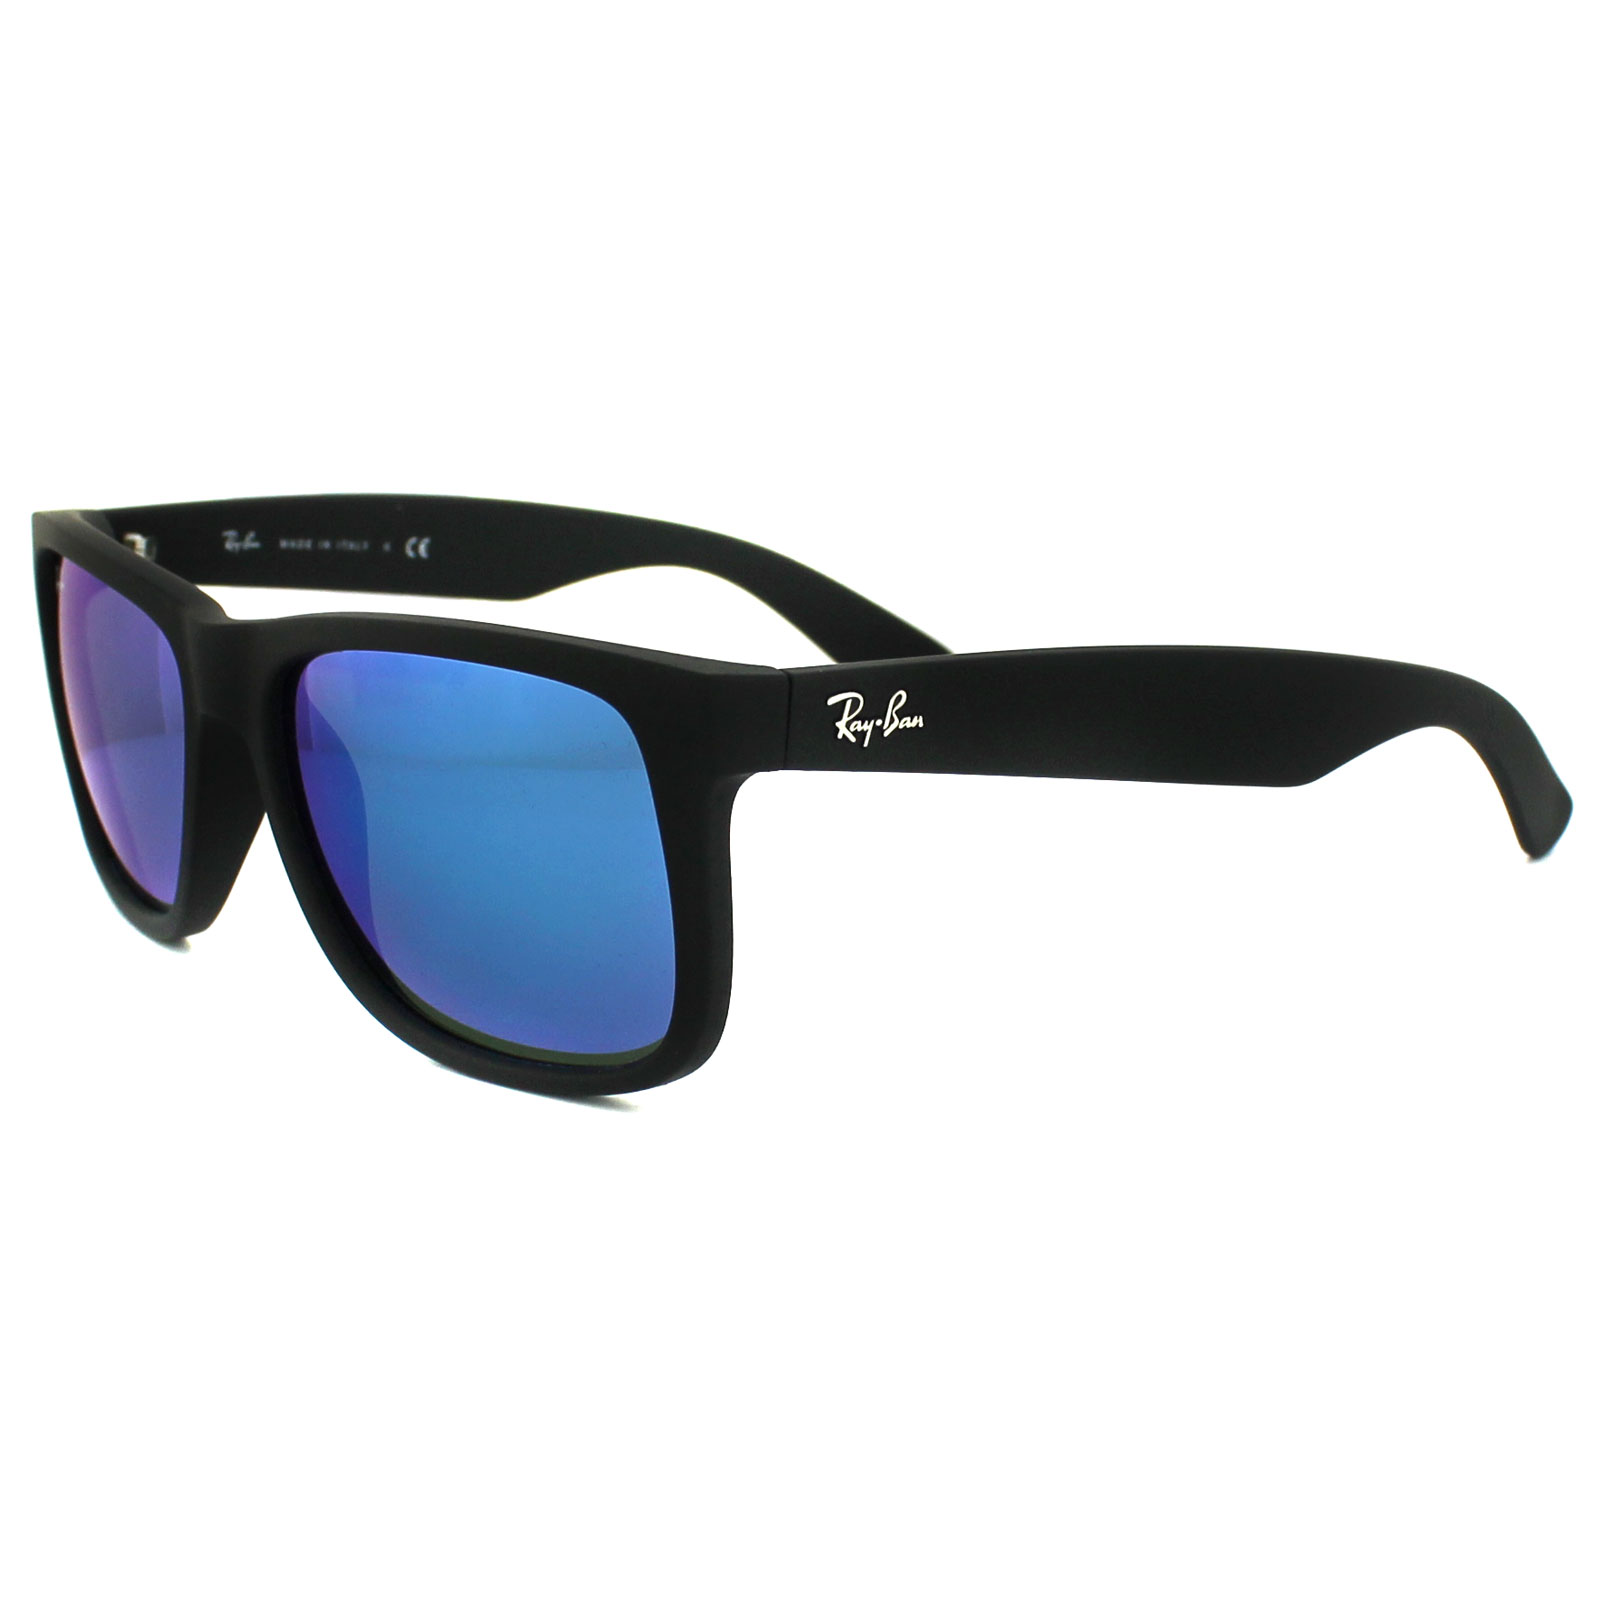 Ray-Ban Sunglasses Justin 4165 622/55 Rubber Black Blue Mirror